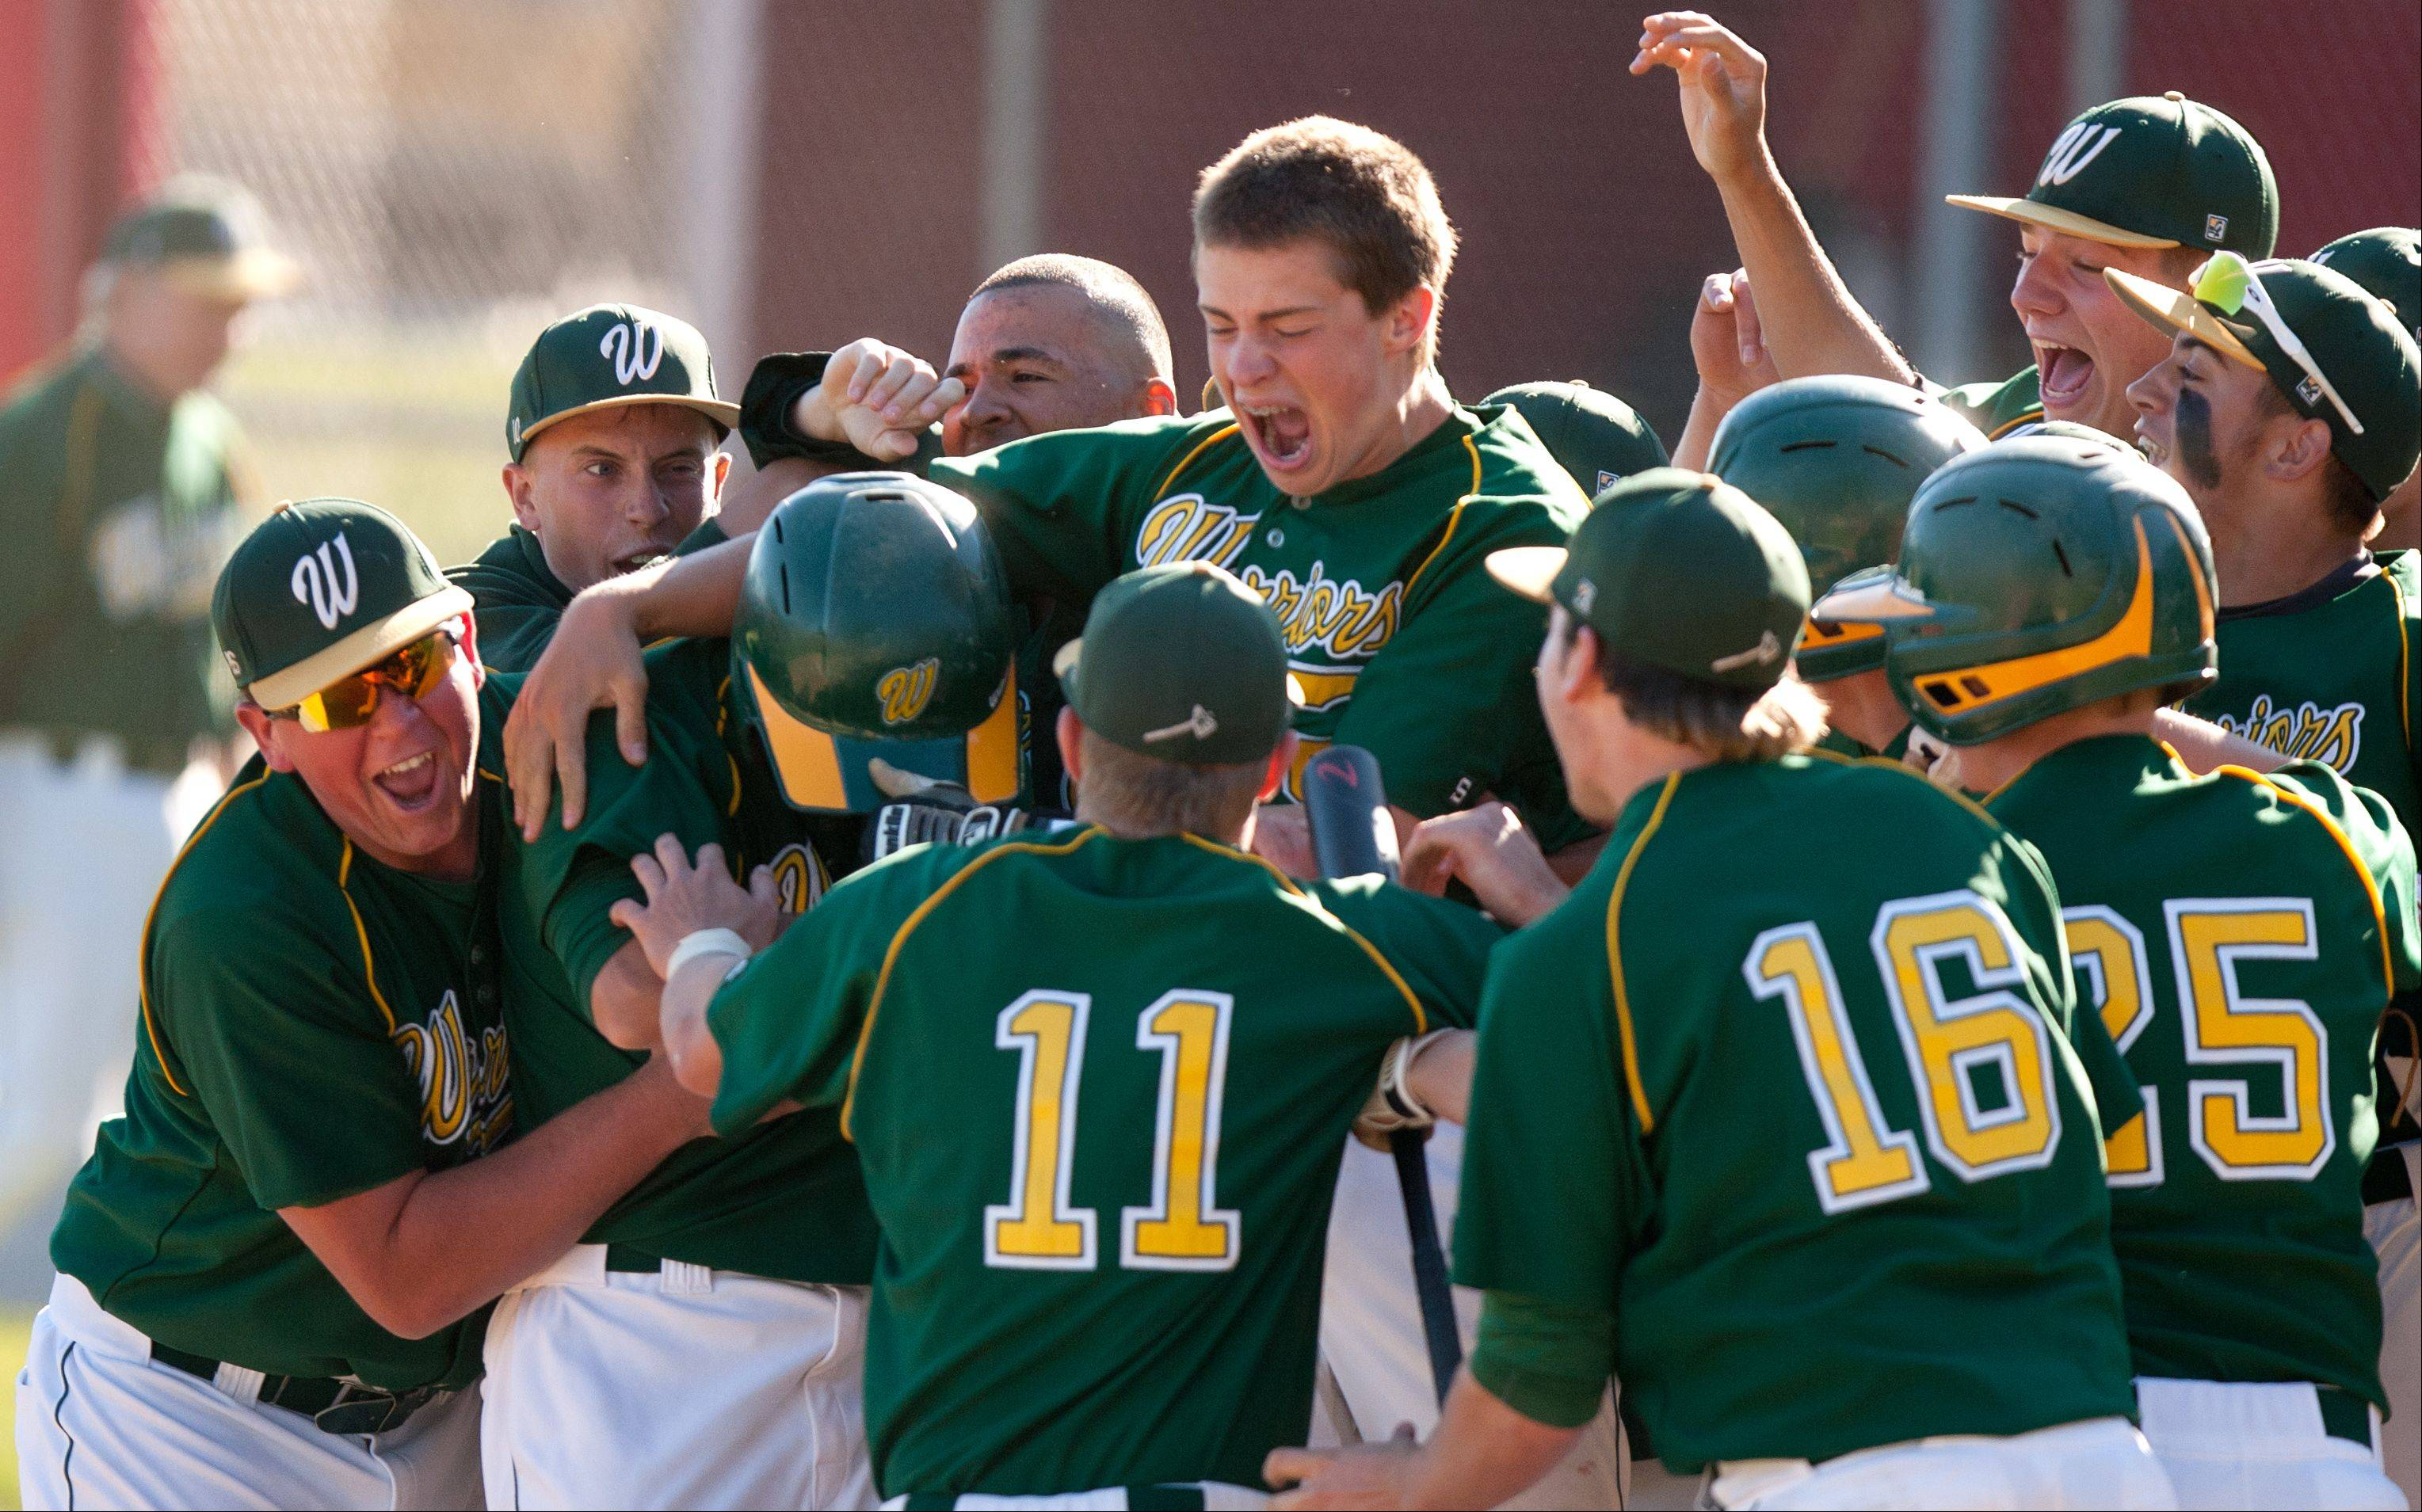 Waubonsie Valley's Tyler Hasper, left, is mobbed by teammates after hitting a walk-off home run for a 2-0 win against Hinsdale Central, during the Hinsdale Central Baseball Regional.